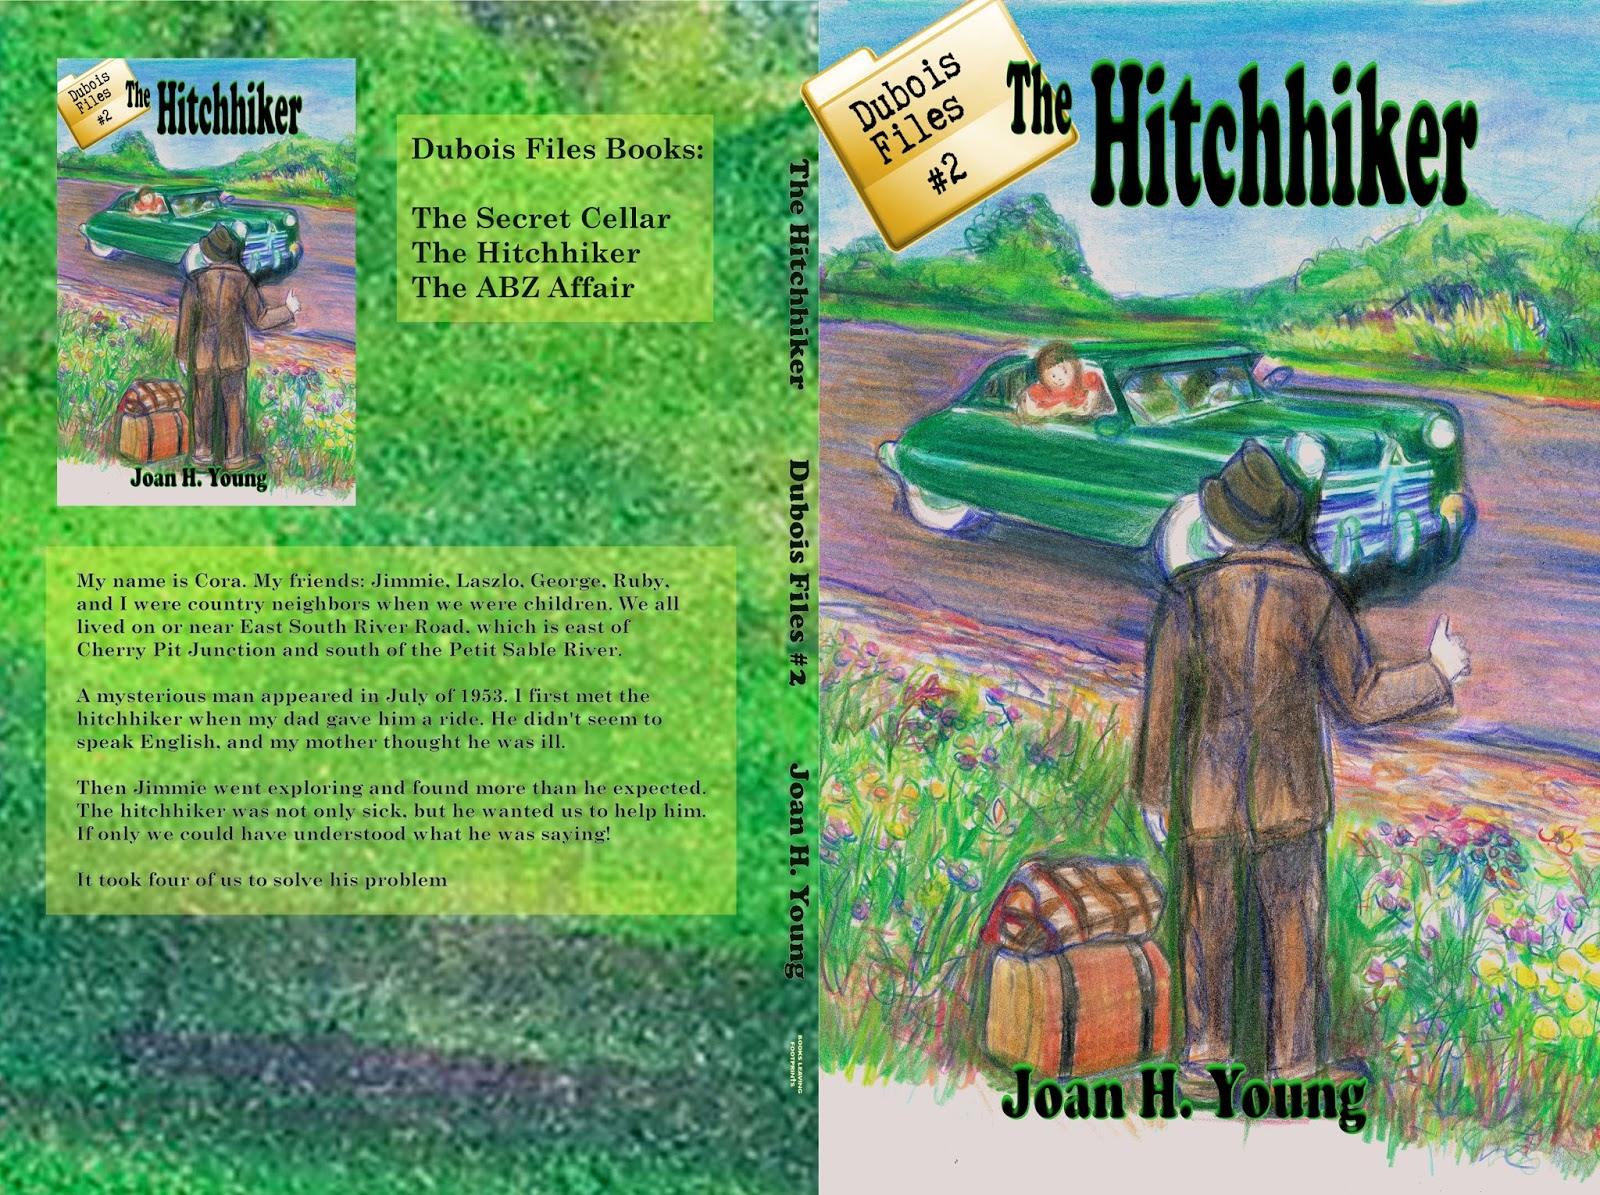 full cover for the paperback edition of The Hitchhiker